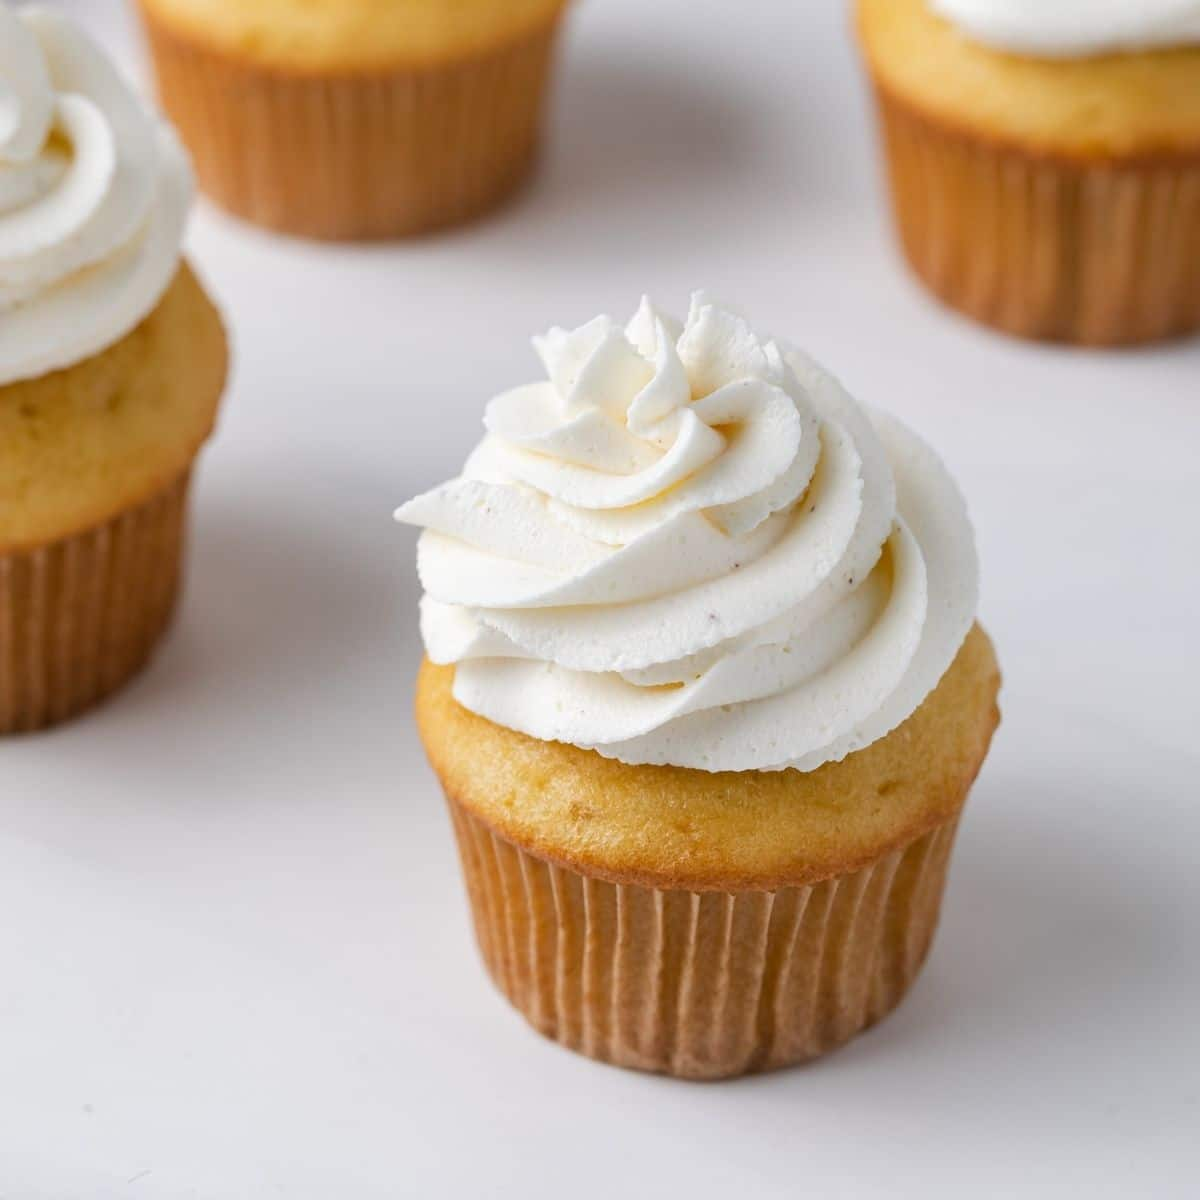 angled view of brown butter frosting swirled over yellow cupcakes